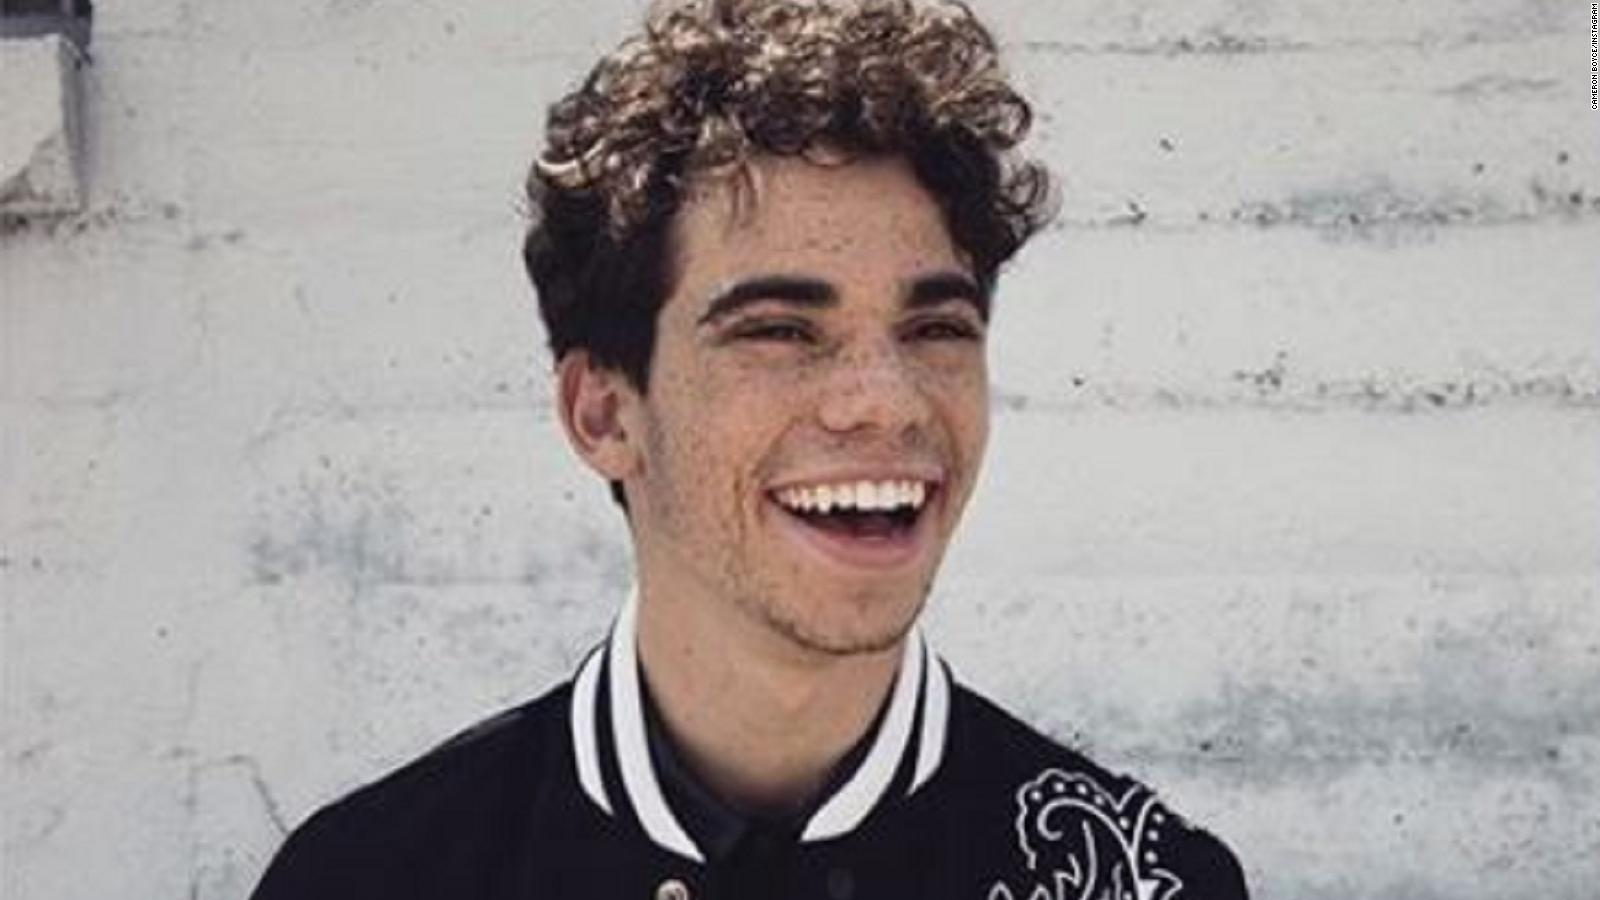 Cameron Boyce S Dad Is Thankful Even In The Midst Of A Nightmare He Can T Wake Up From Cnn